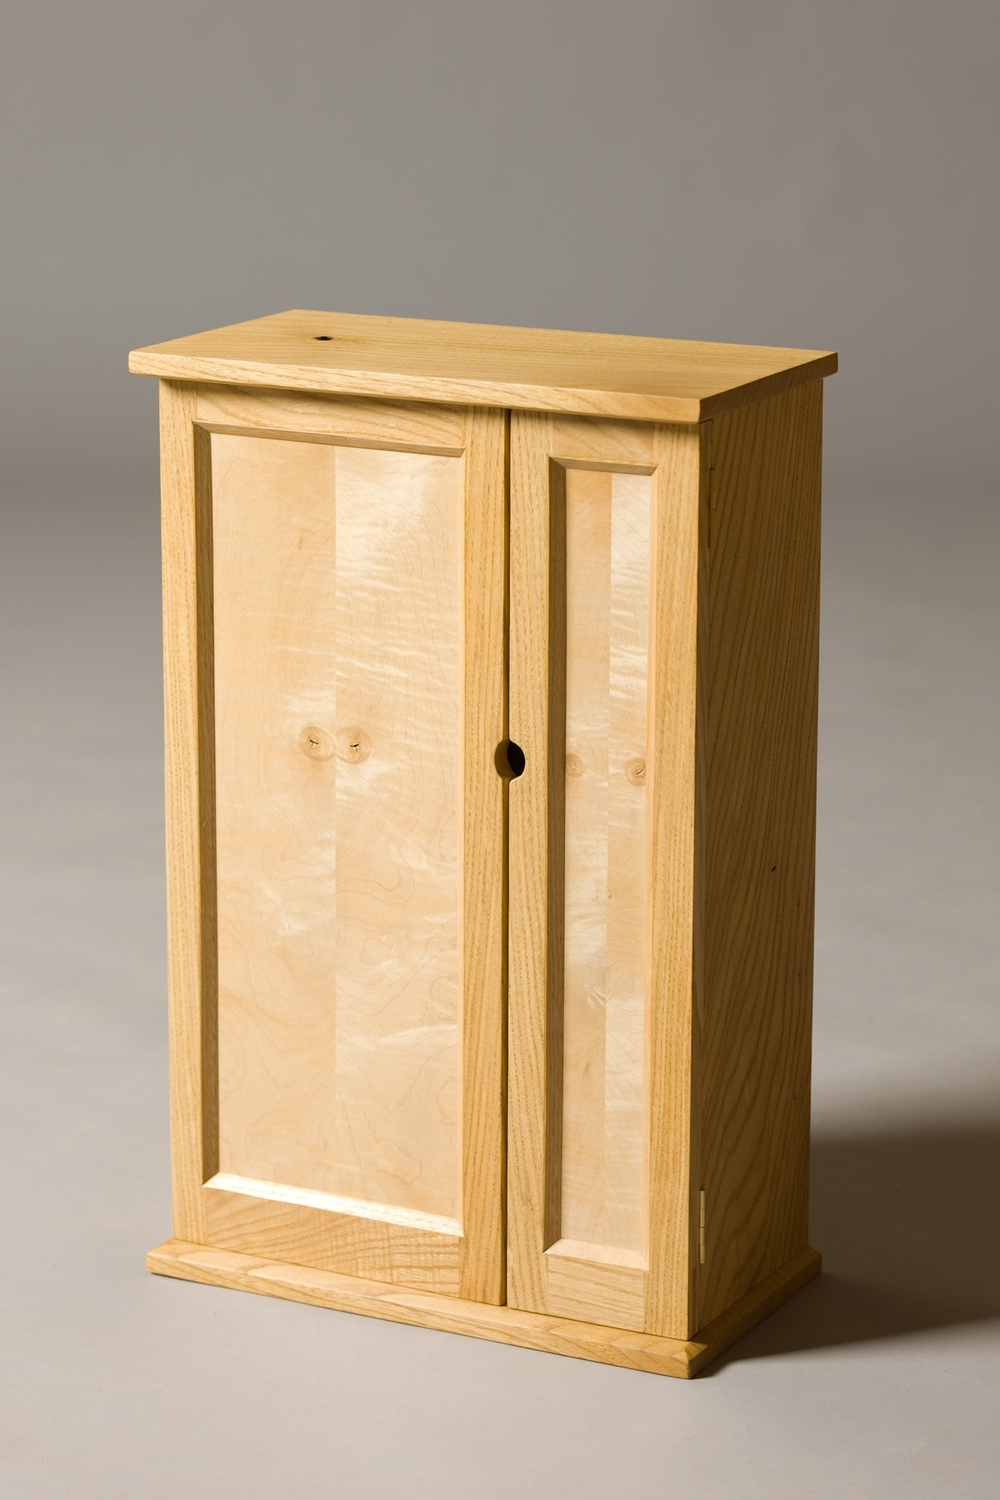 Chestnut Cabinet1 copy.jpg